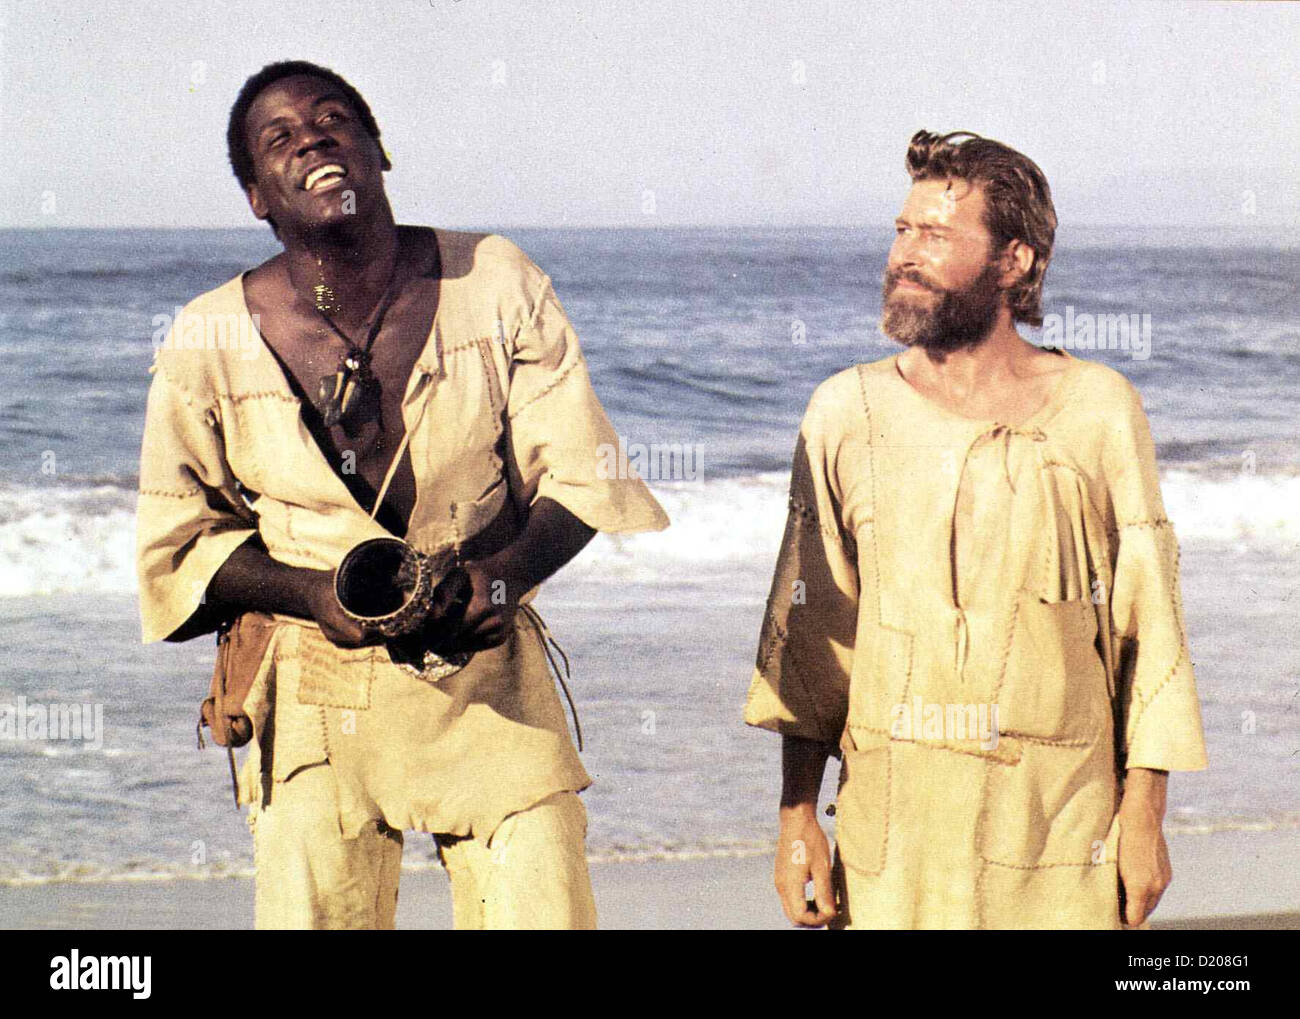 Robinson Crusoe Stock Photos  Robinson Crusoe Stock Images  Alamy